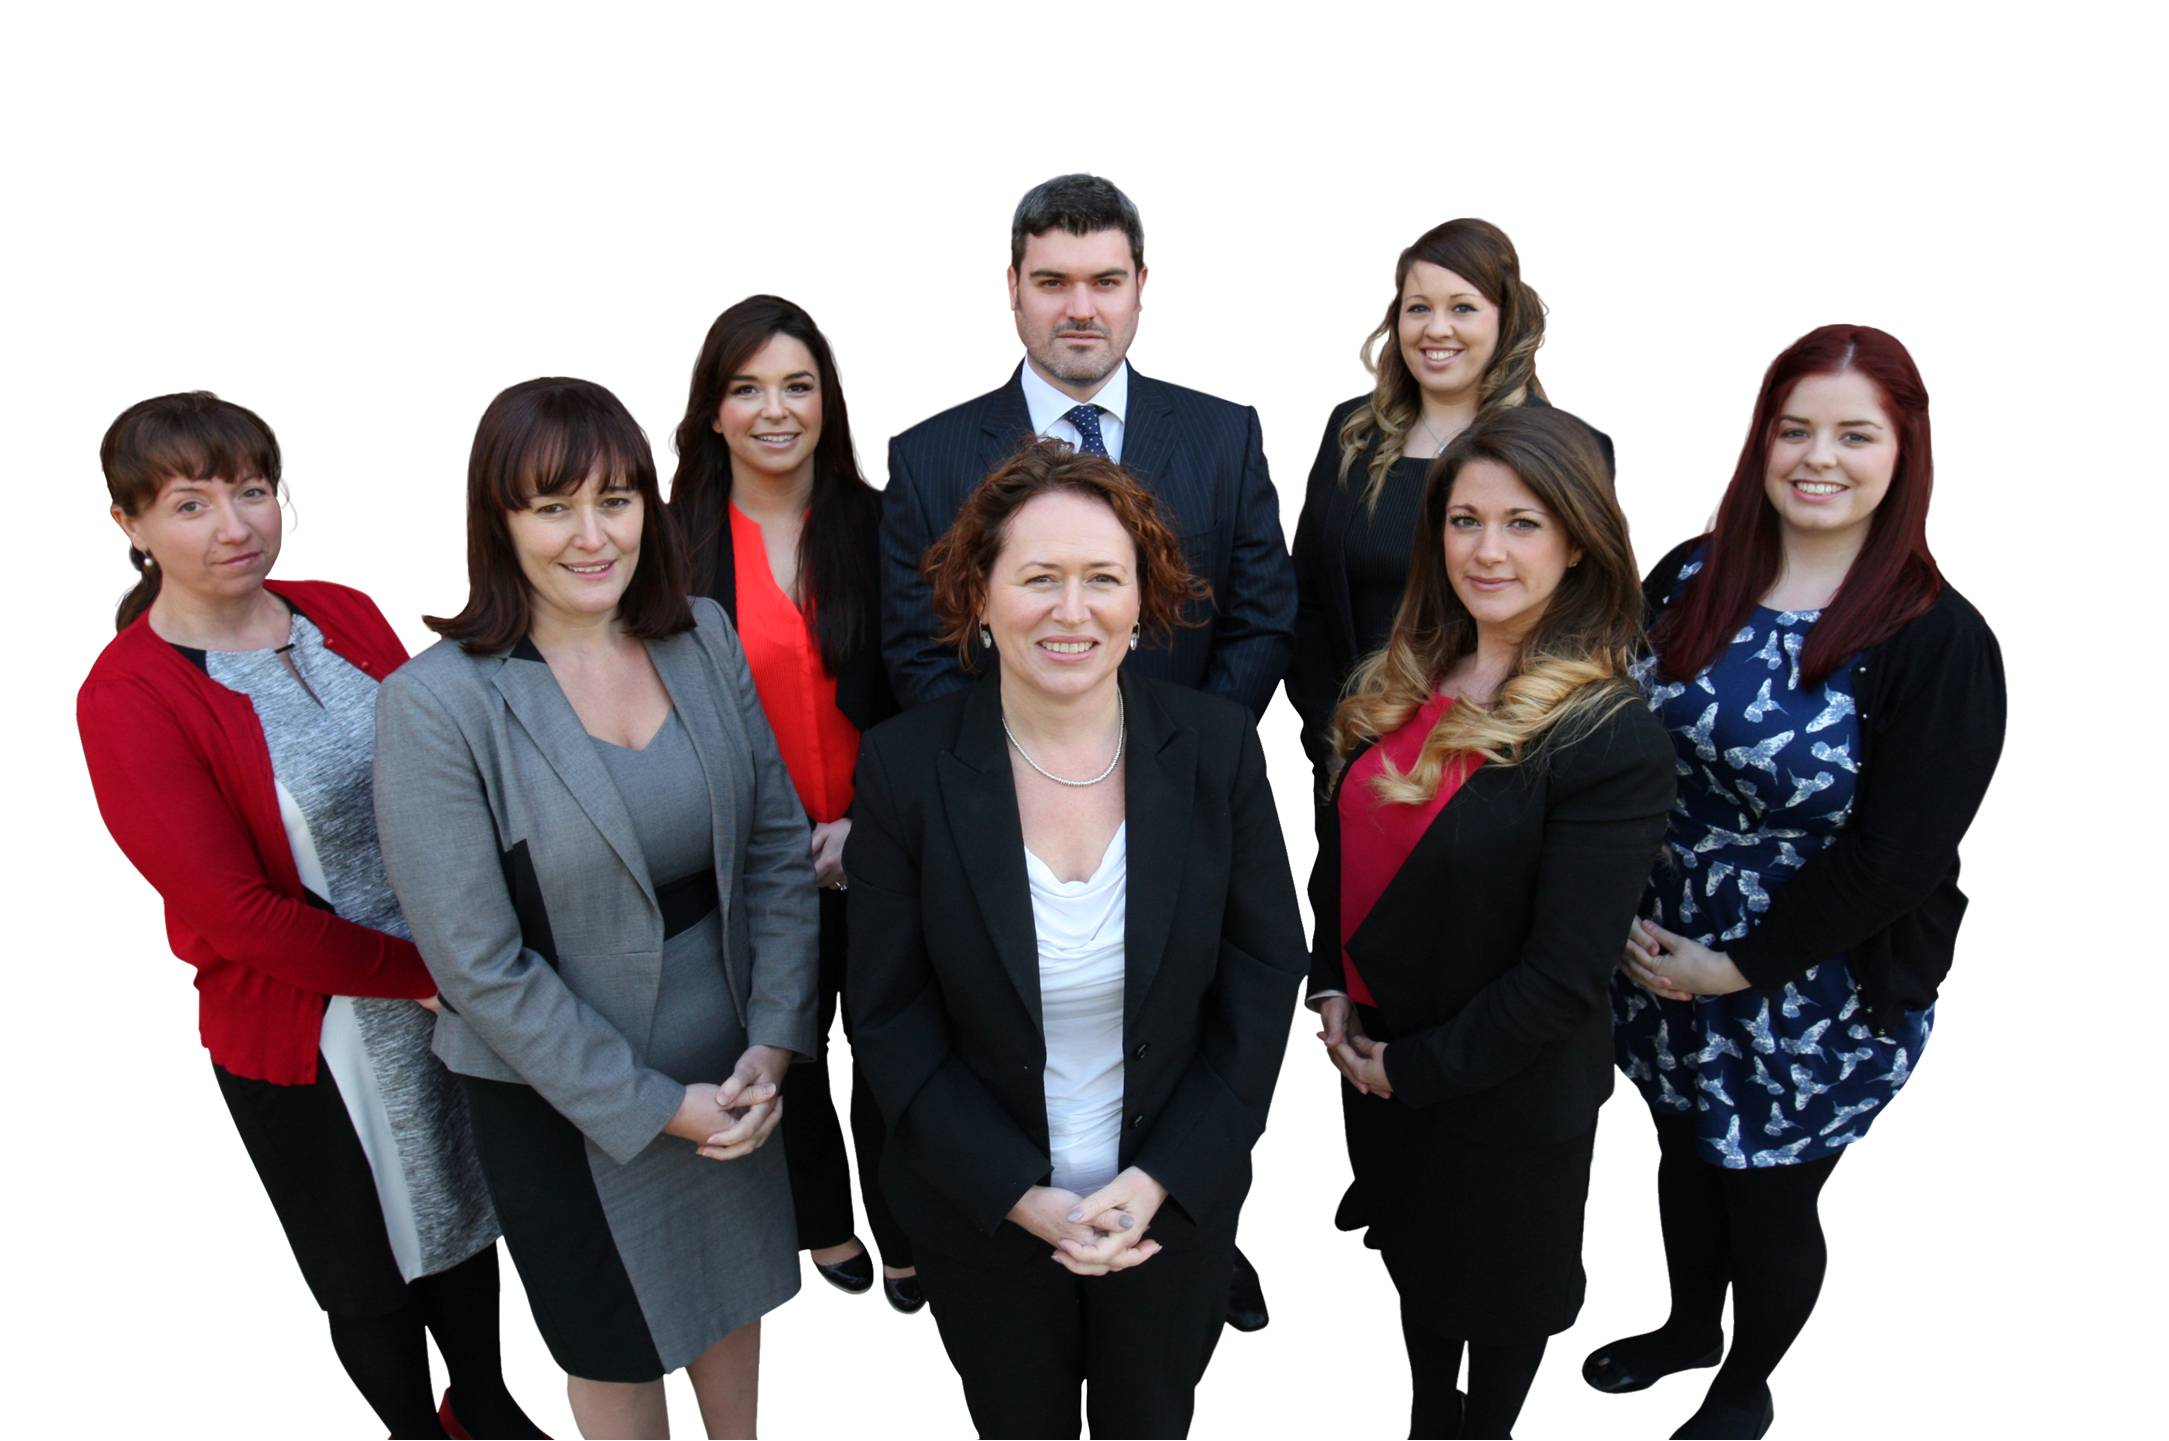 Our Wrong Site Surgery expert team. We deal with medical negligence claims arising from Wrong Site Surgery.